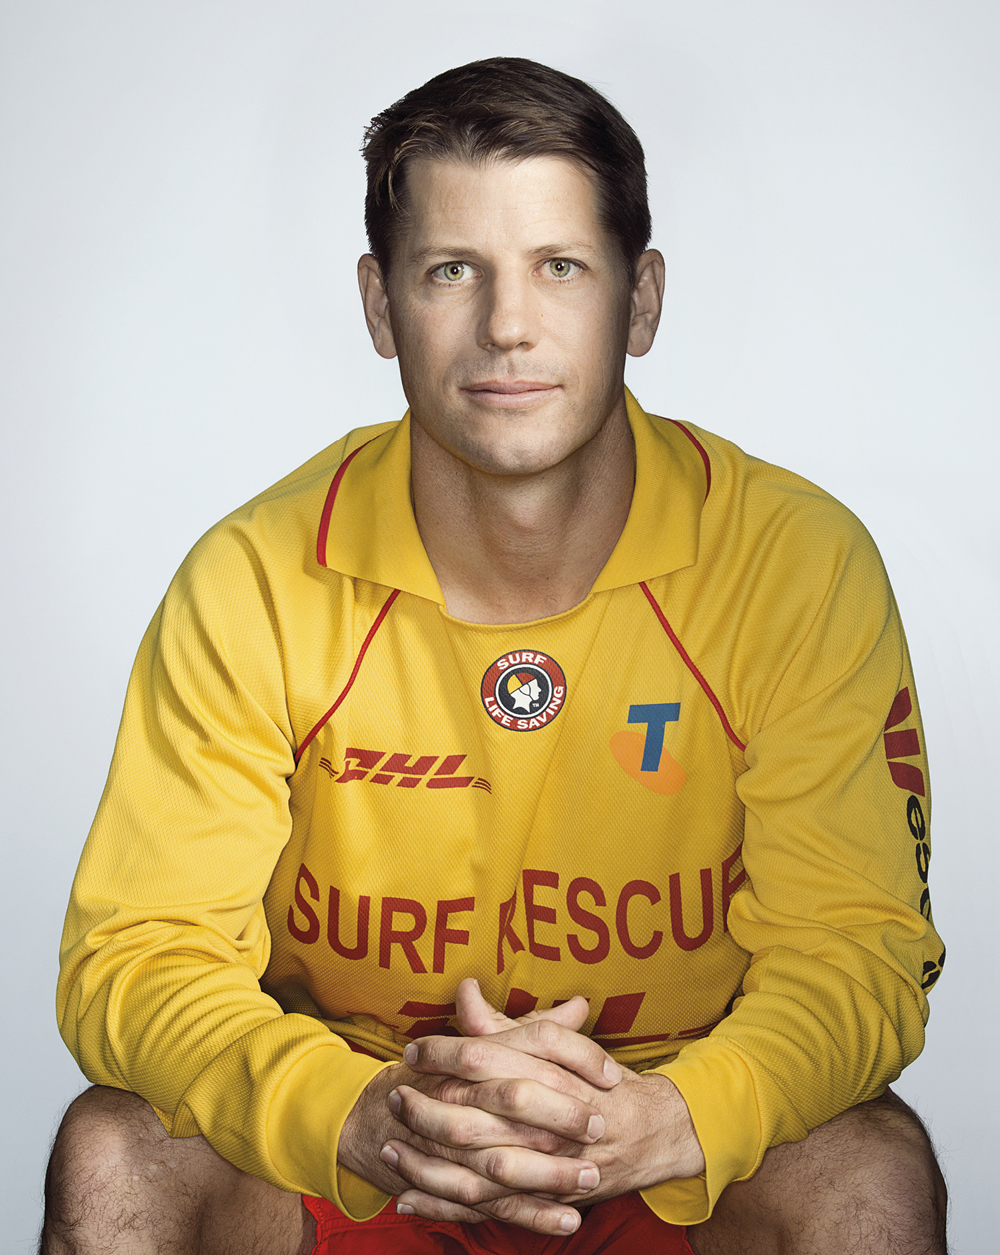 Portrait of Kim Wallis in his surf lifesaving unifrom